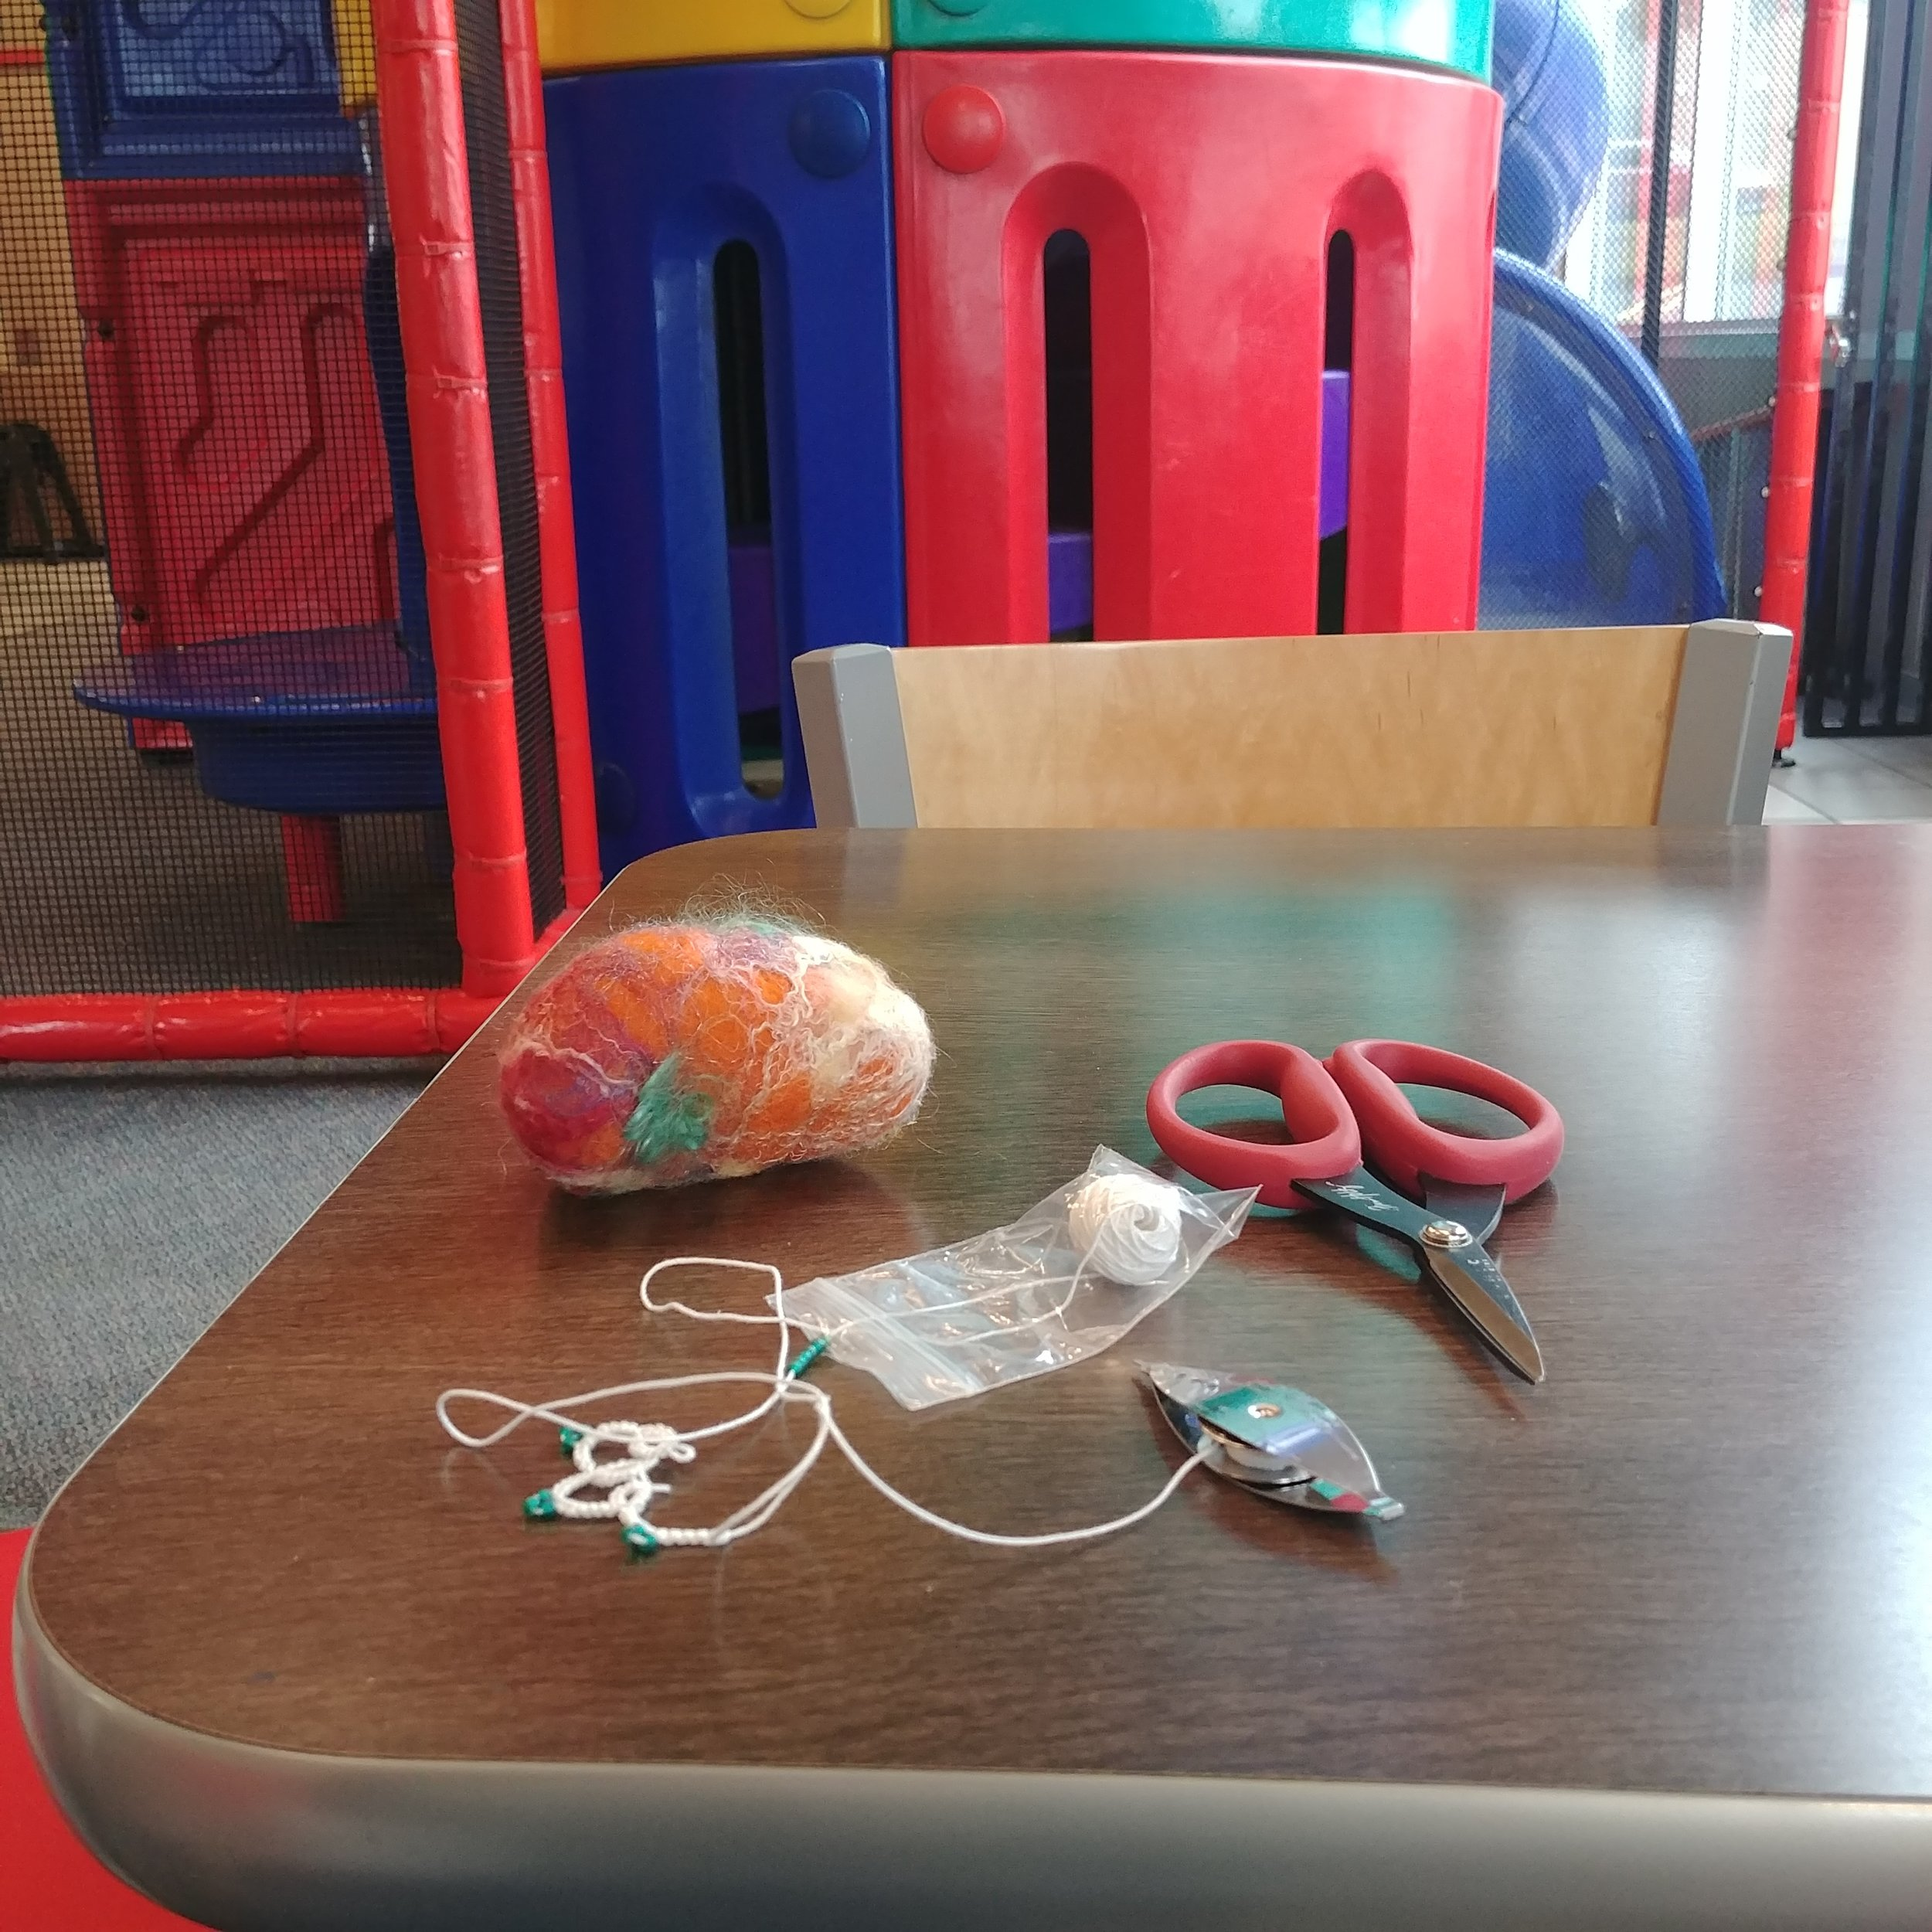 Shuttle Tatting at the Burger King playground